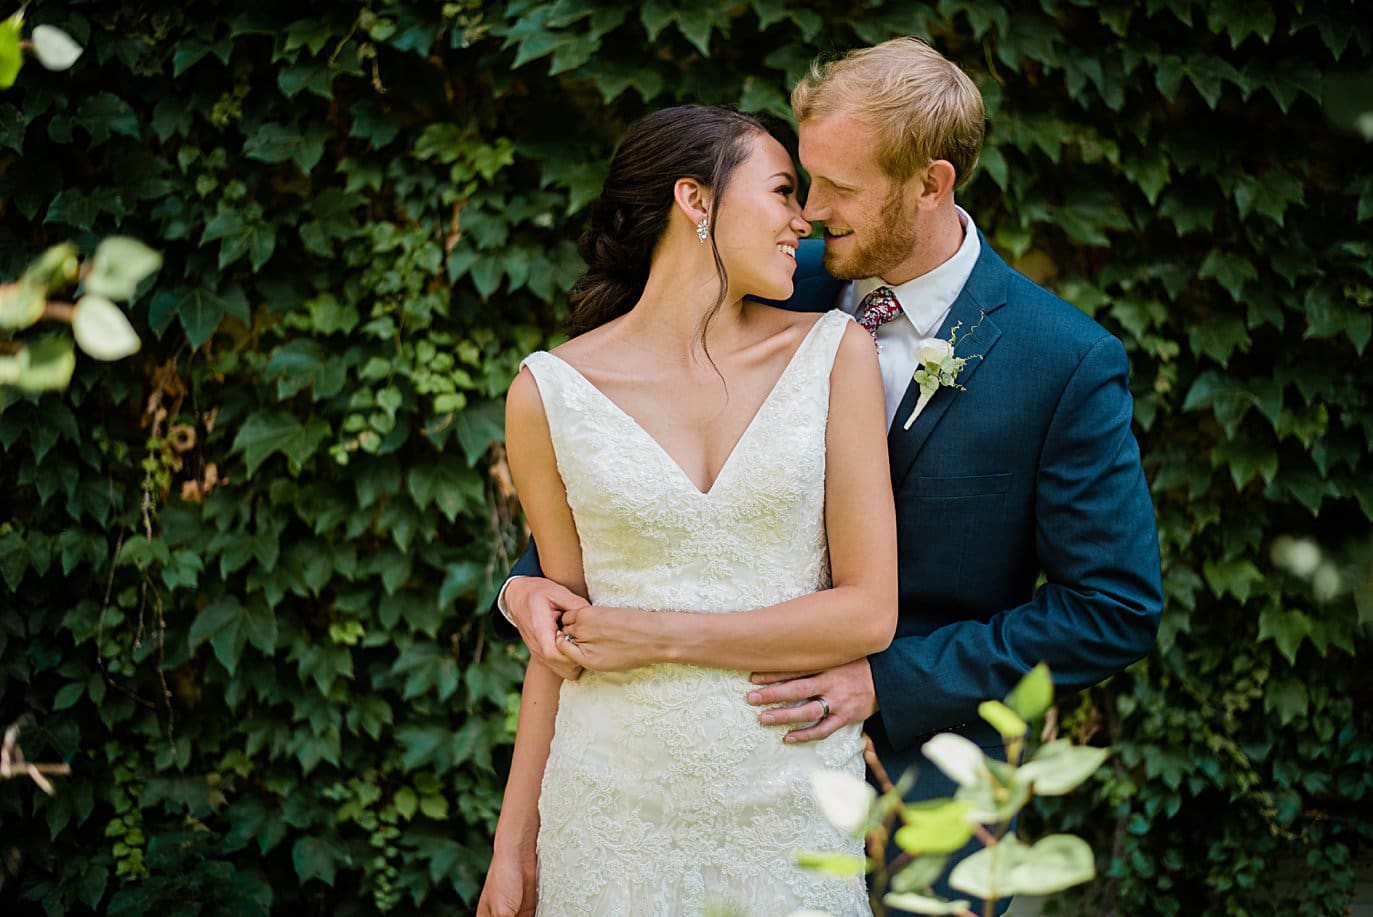 bride and groom cuddle by ivy wall at Walker Fine Art Gallery Wedding by Fort Collins Wedding Photographer Jennie Crate